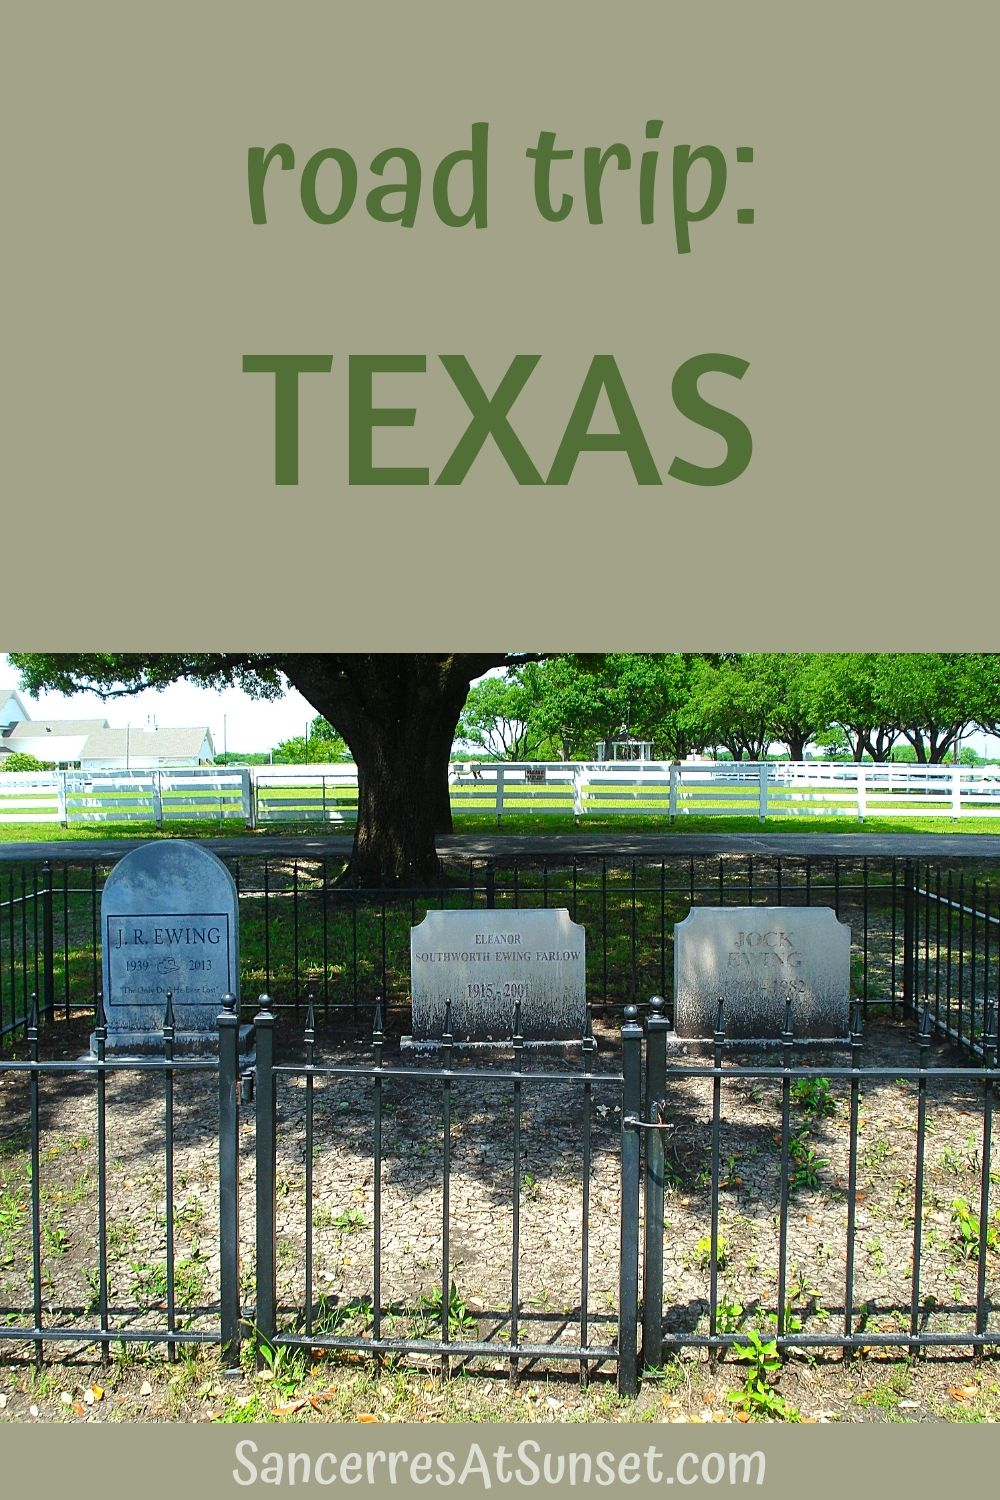 Texas:  Cross-Country Road Trip, Part 4